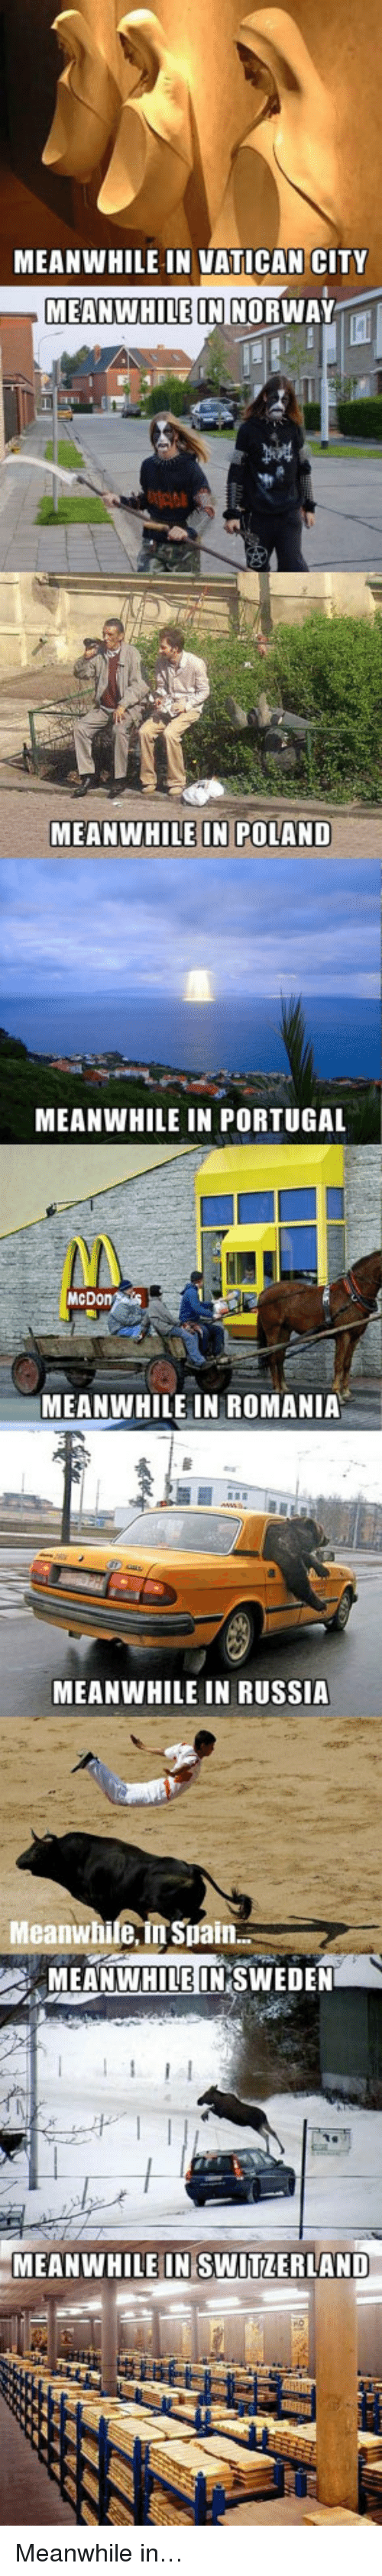 Norway, Portugal, and Russia: MEANWHILE IN VATICAN CITY  MEANWHILE IN NORWAY  MEANWHILE IN POLAND  MEANWHILE IN PORTUGAL  McDon  MEANWHILE IN ROMANIA  MEANWHILE IN RUSSIA  Meanwhile, in Spain.  MEANWHILEIN'SWEDEN  MEANWHILE IN SWITZERLAND <p>Meanwhile in…</p>